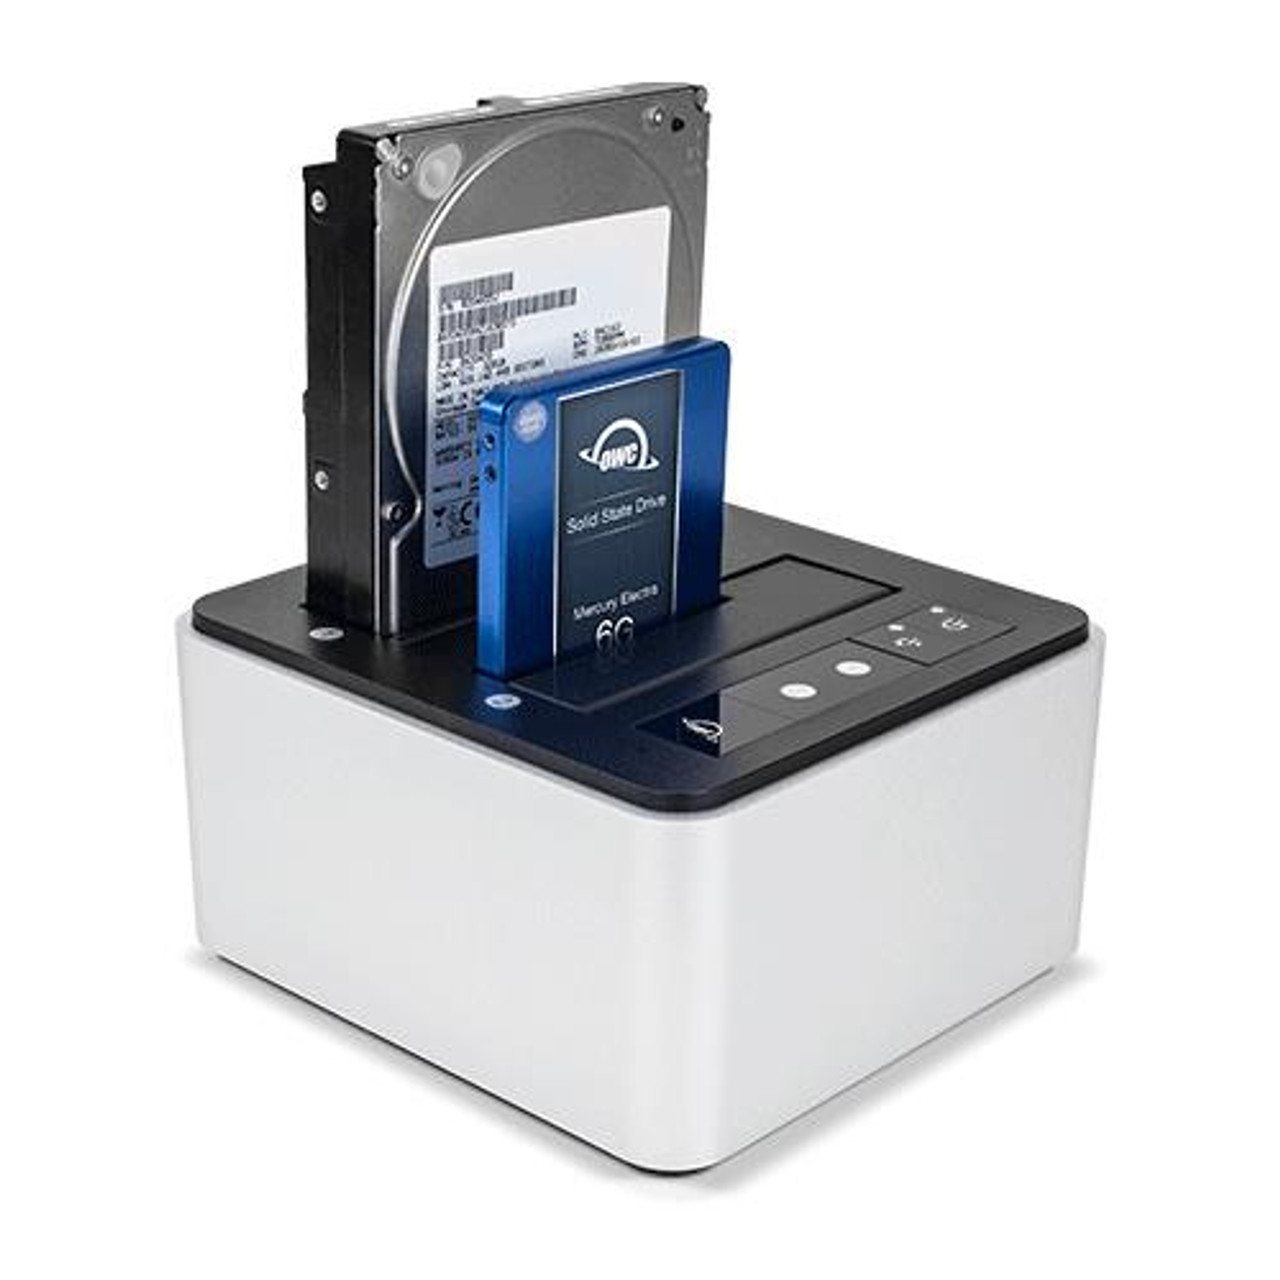 "OWC USB-C Drive Dock - Dual Drive Bay Solution with USB 3.1 Gen 2. For 2.5"" and 3.5"" SATA Drives"